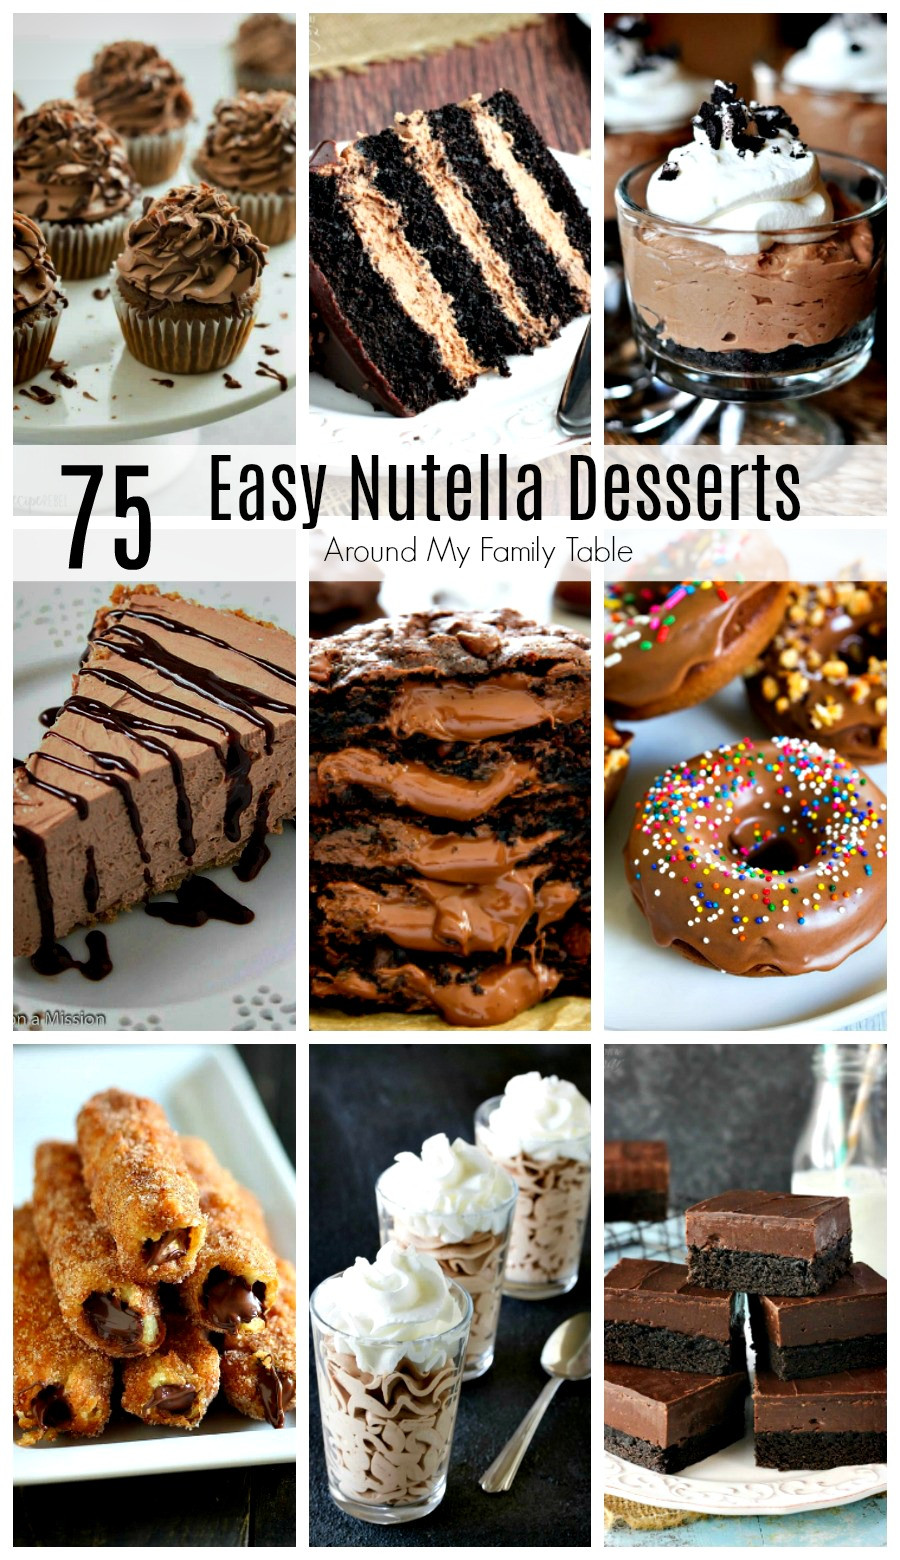 Easy Nutella Desserts  75 Nutella Dessert Recipes Around My Family Table